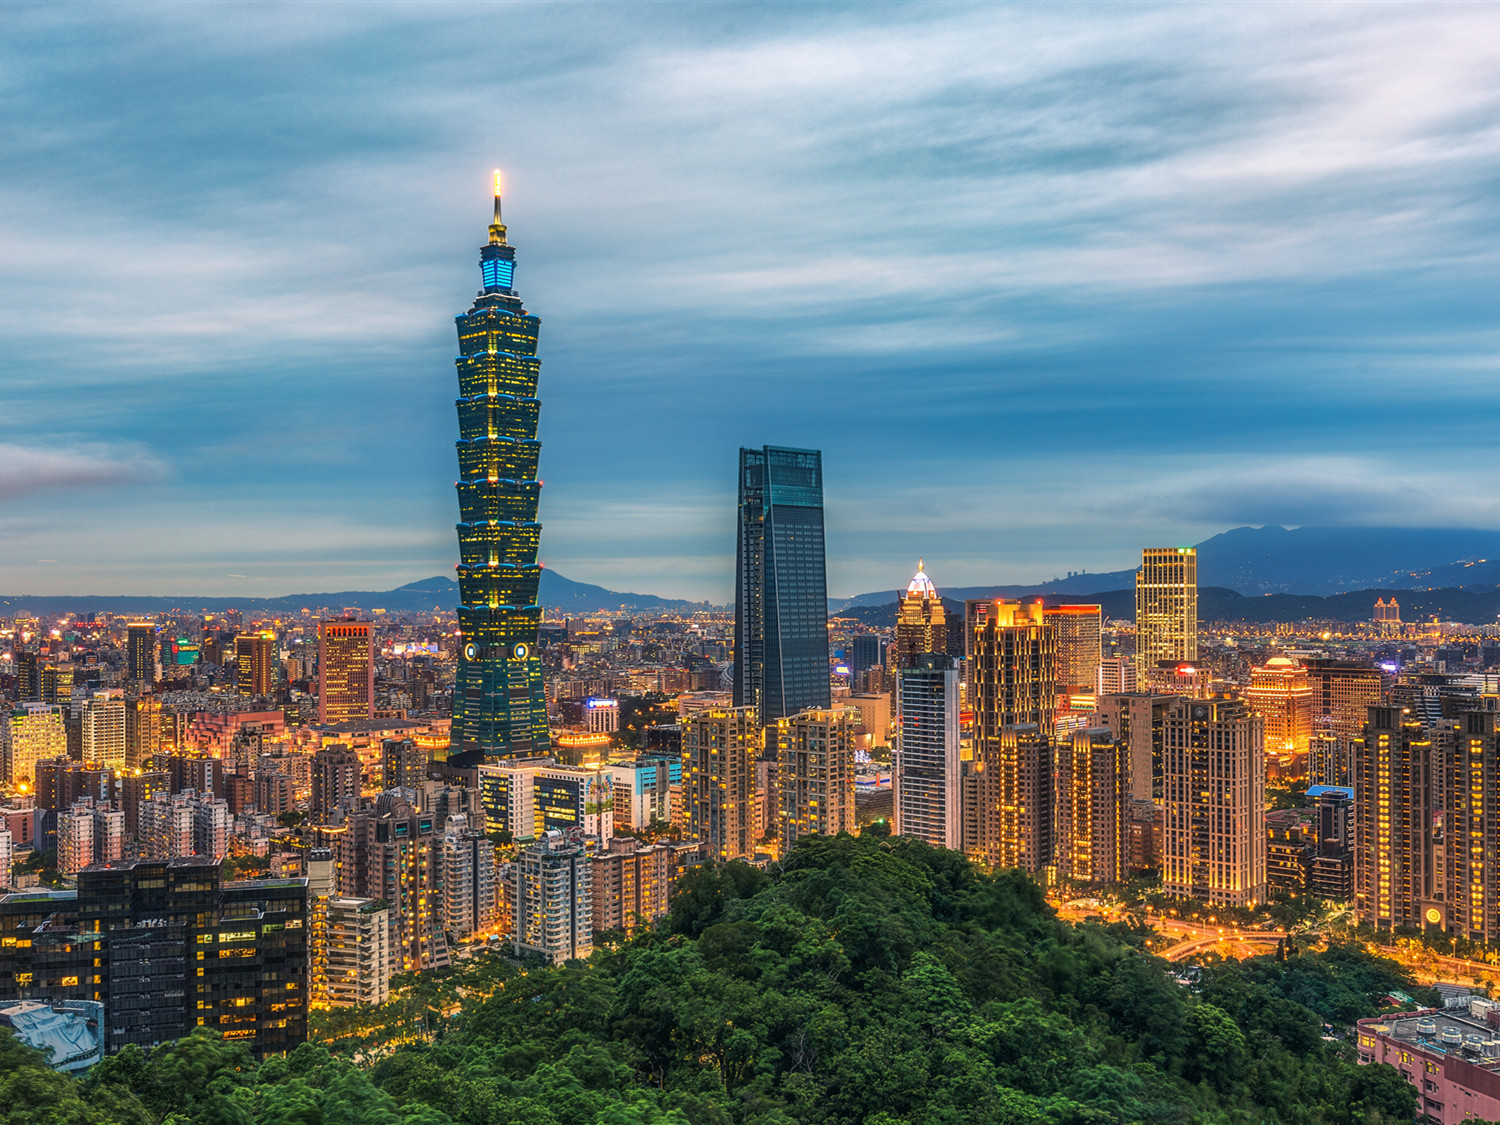 China announces measures to boost ties with Taiwan region